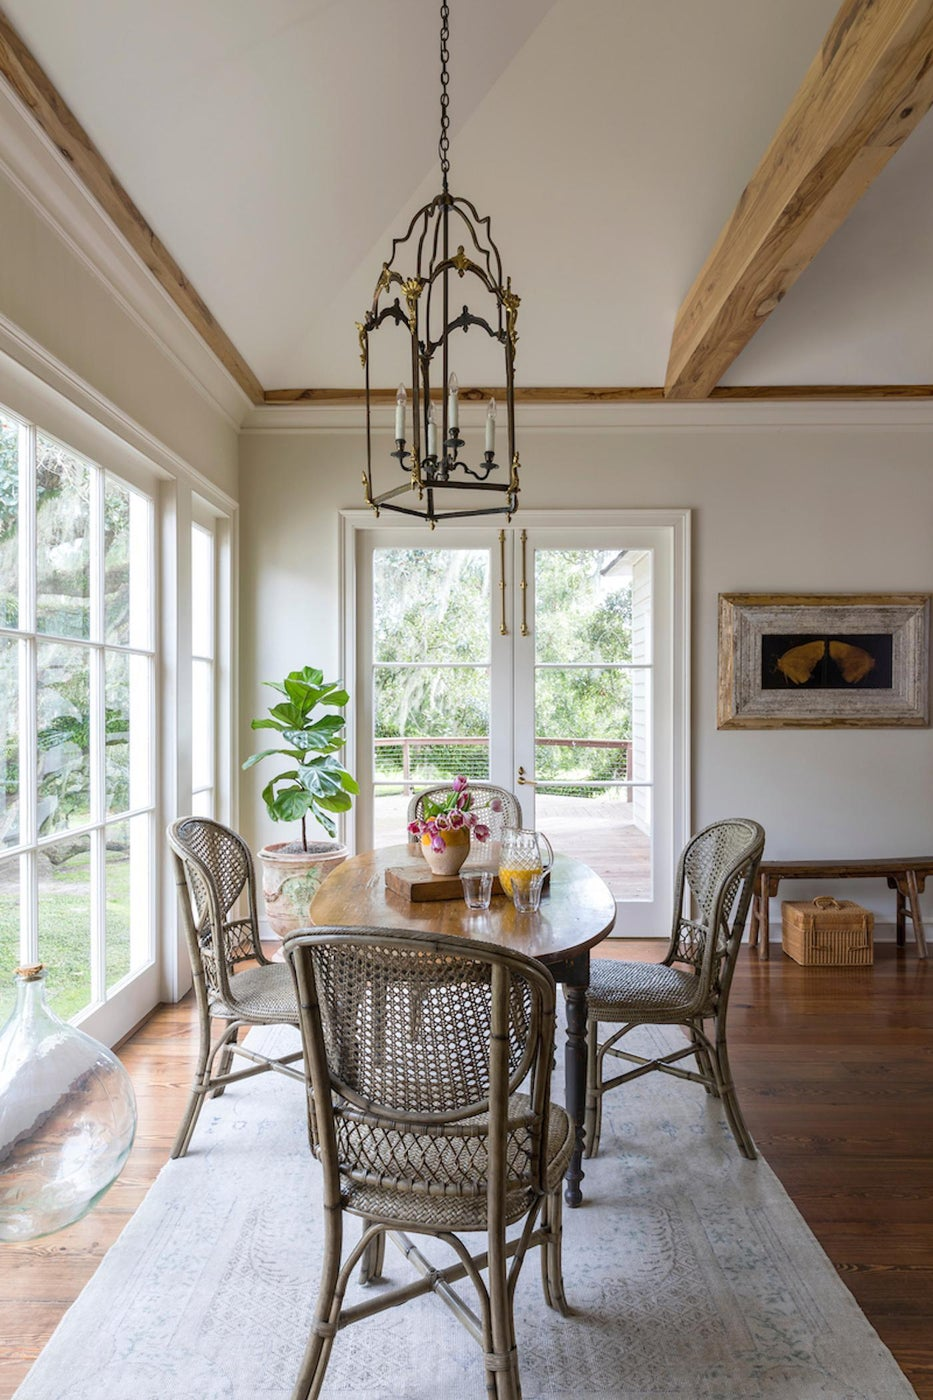 Chic breakfast nook provides a multi-use space in the family home